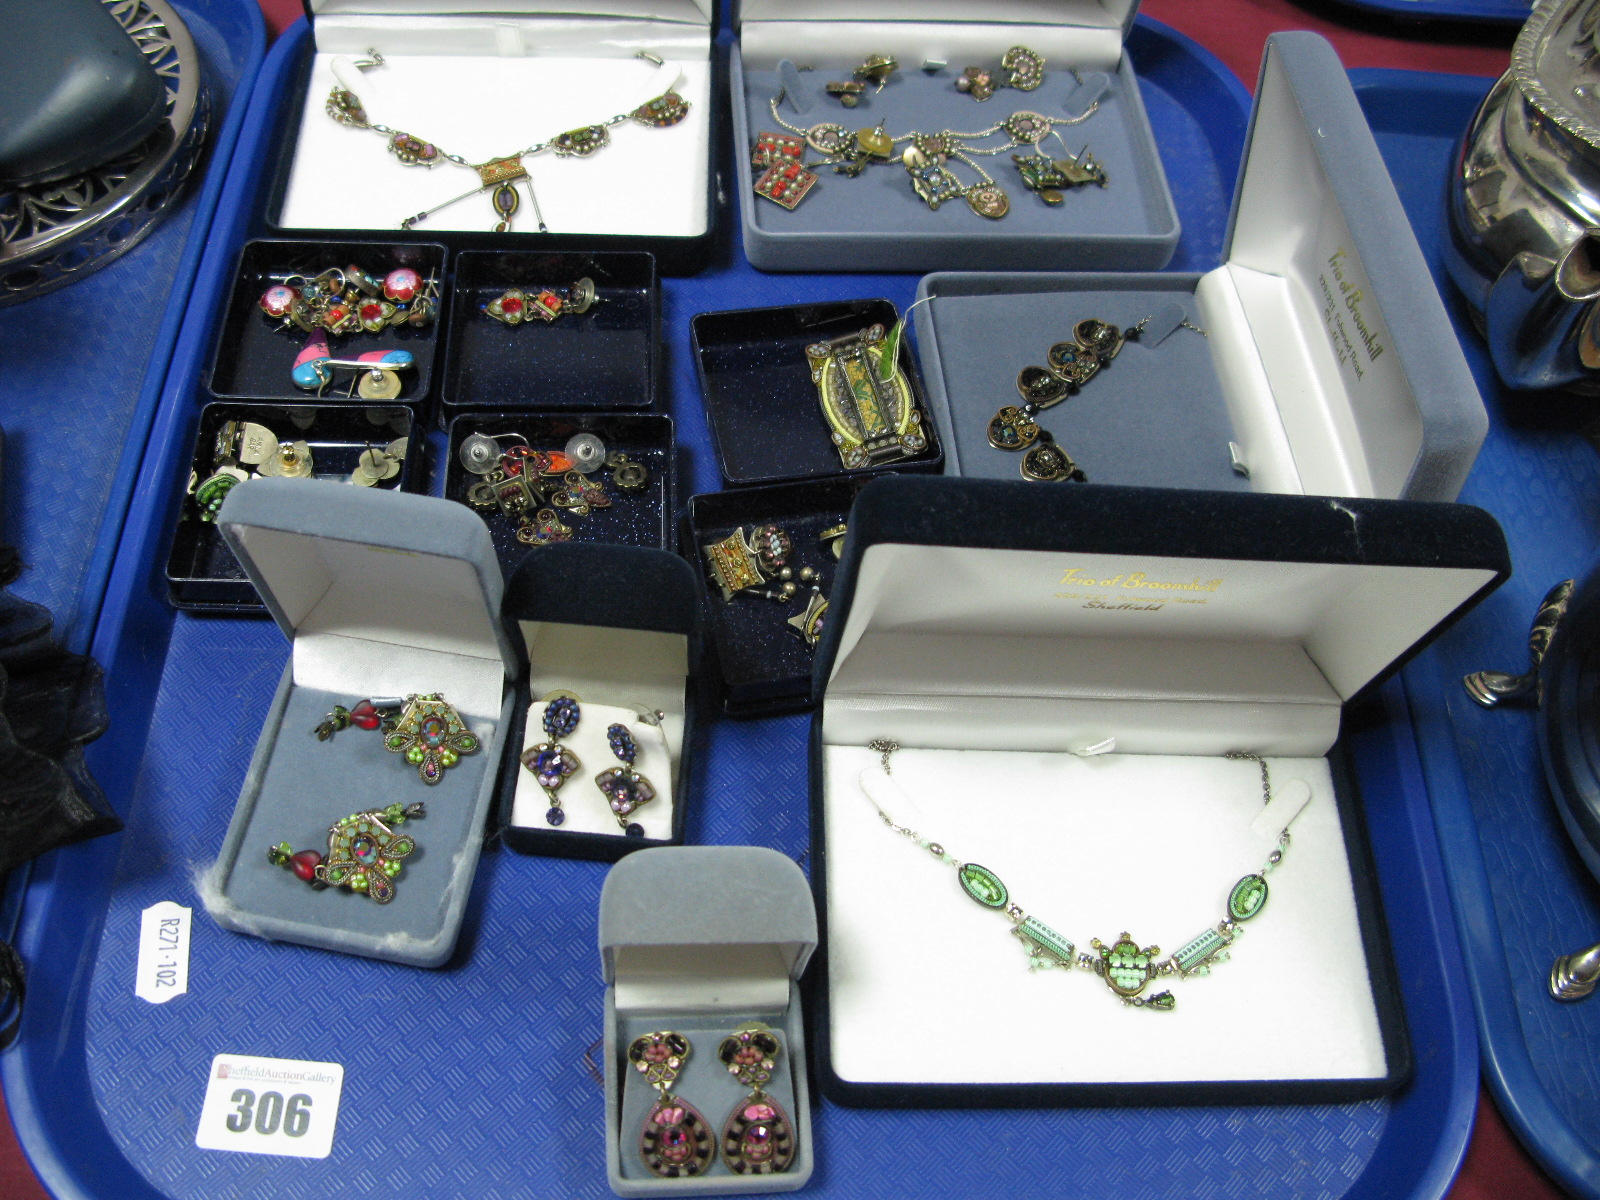 Lot 306 - Ayala Bar; A collection of decorative beaded costume jewellery, including necklaces, earrings and